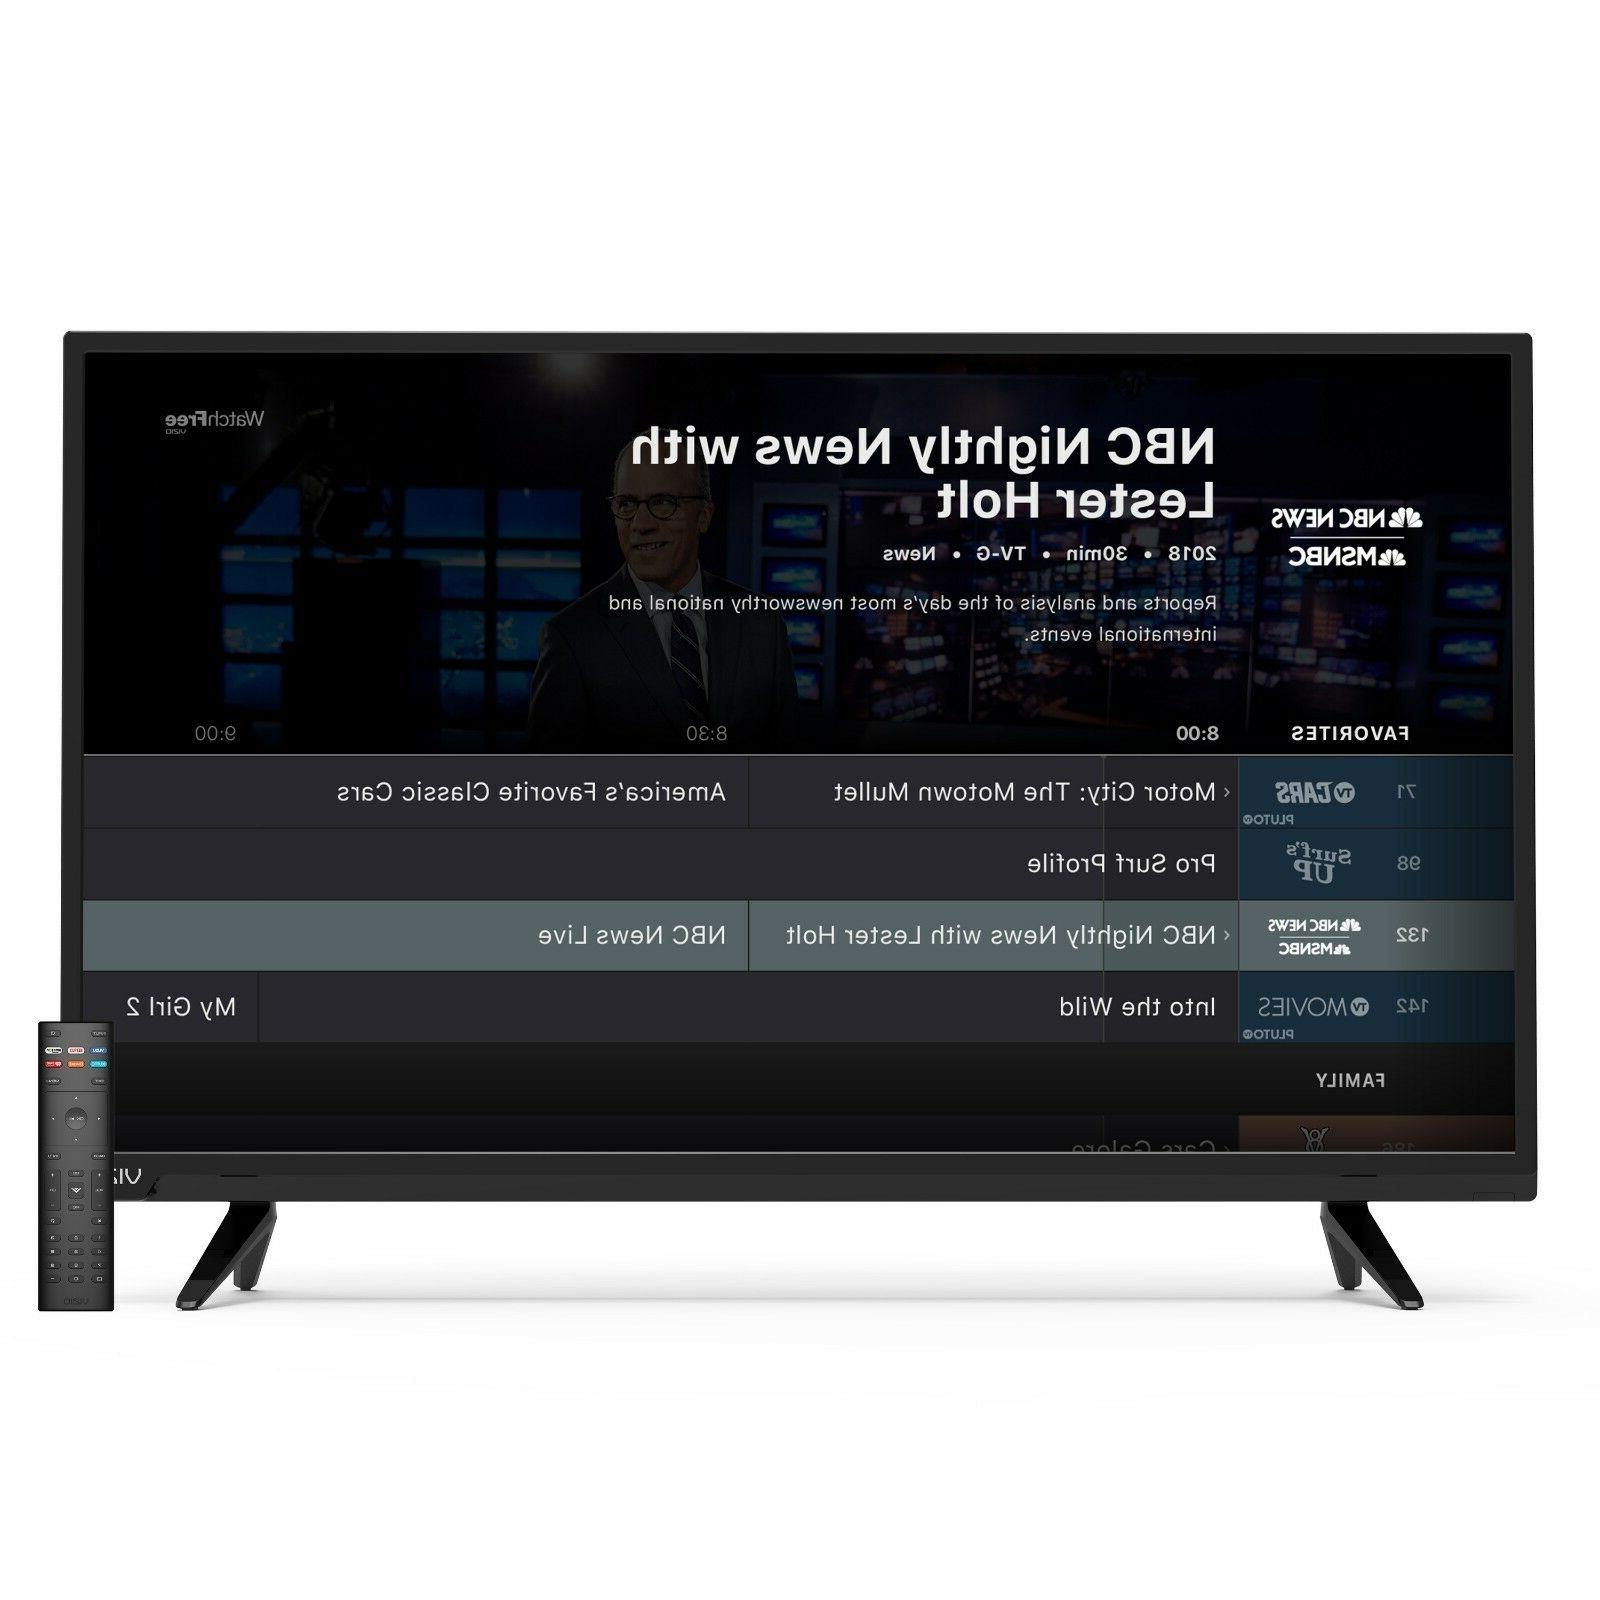 43 TV Full Resolution Movie Television Picture TVs